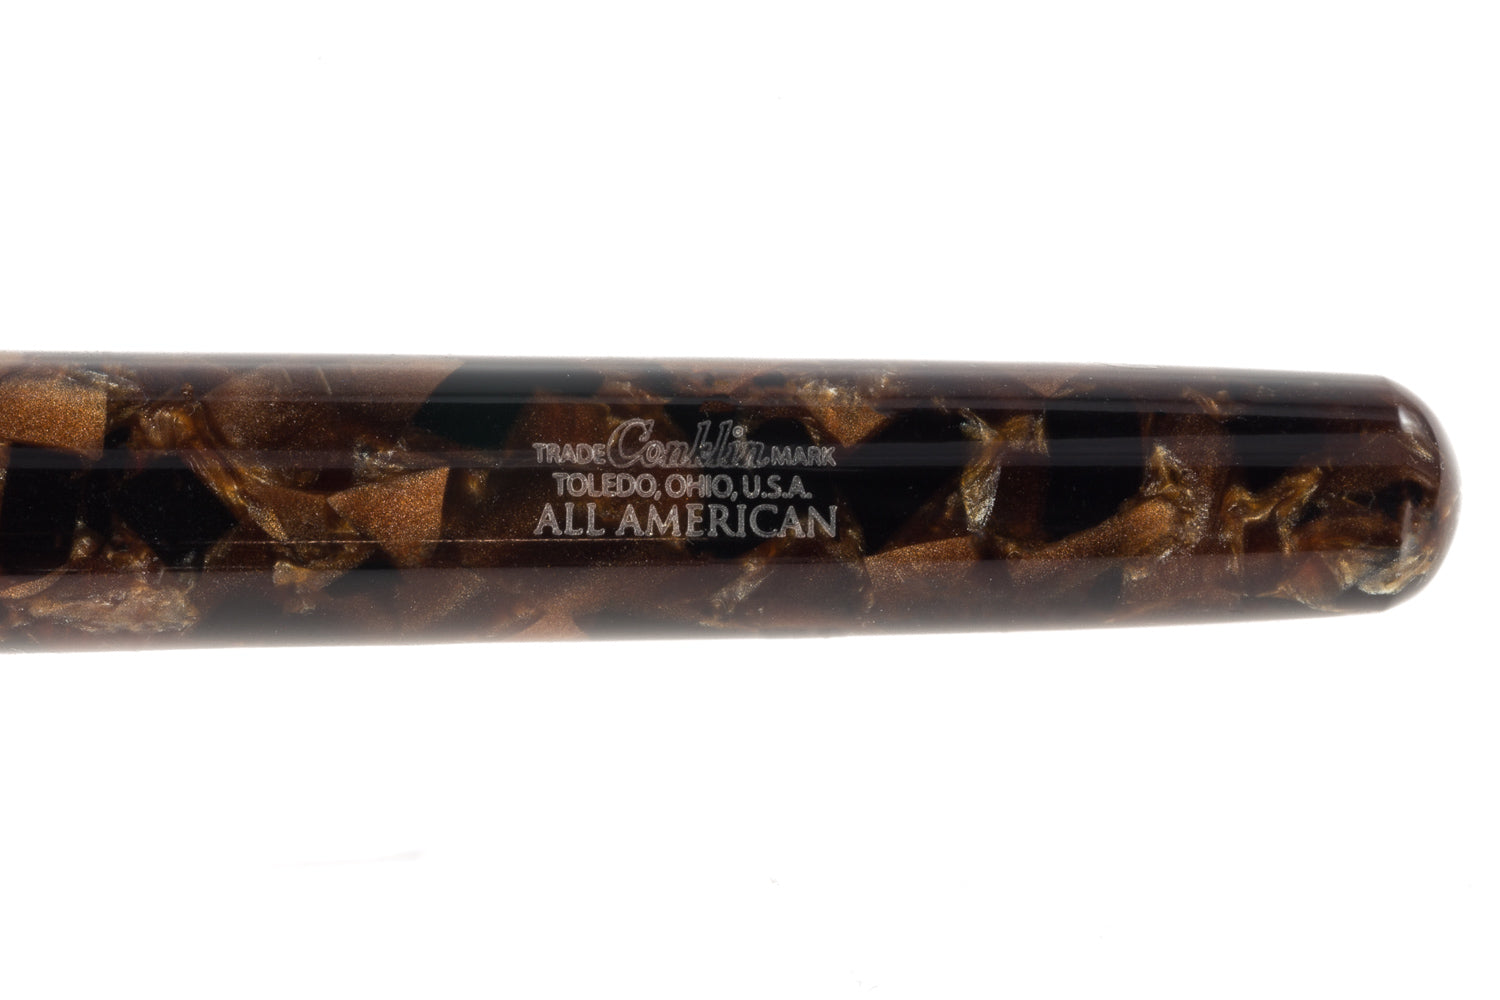 Conklin All American Fountain Pen - Brownstone